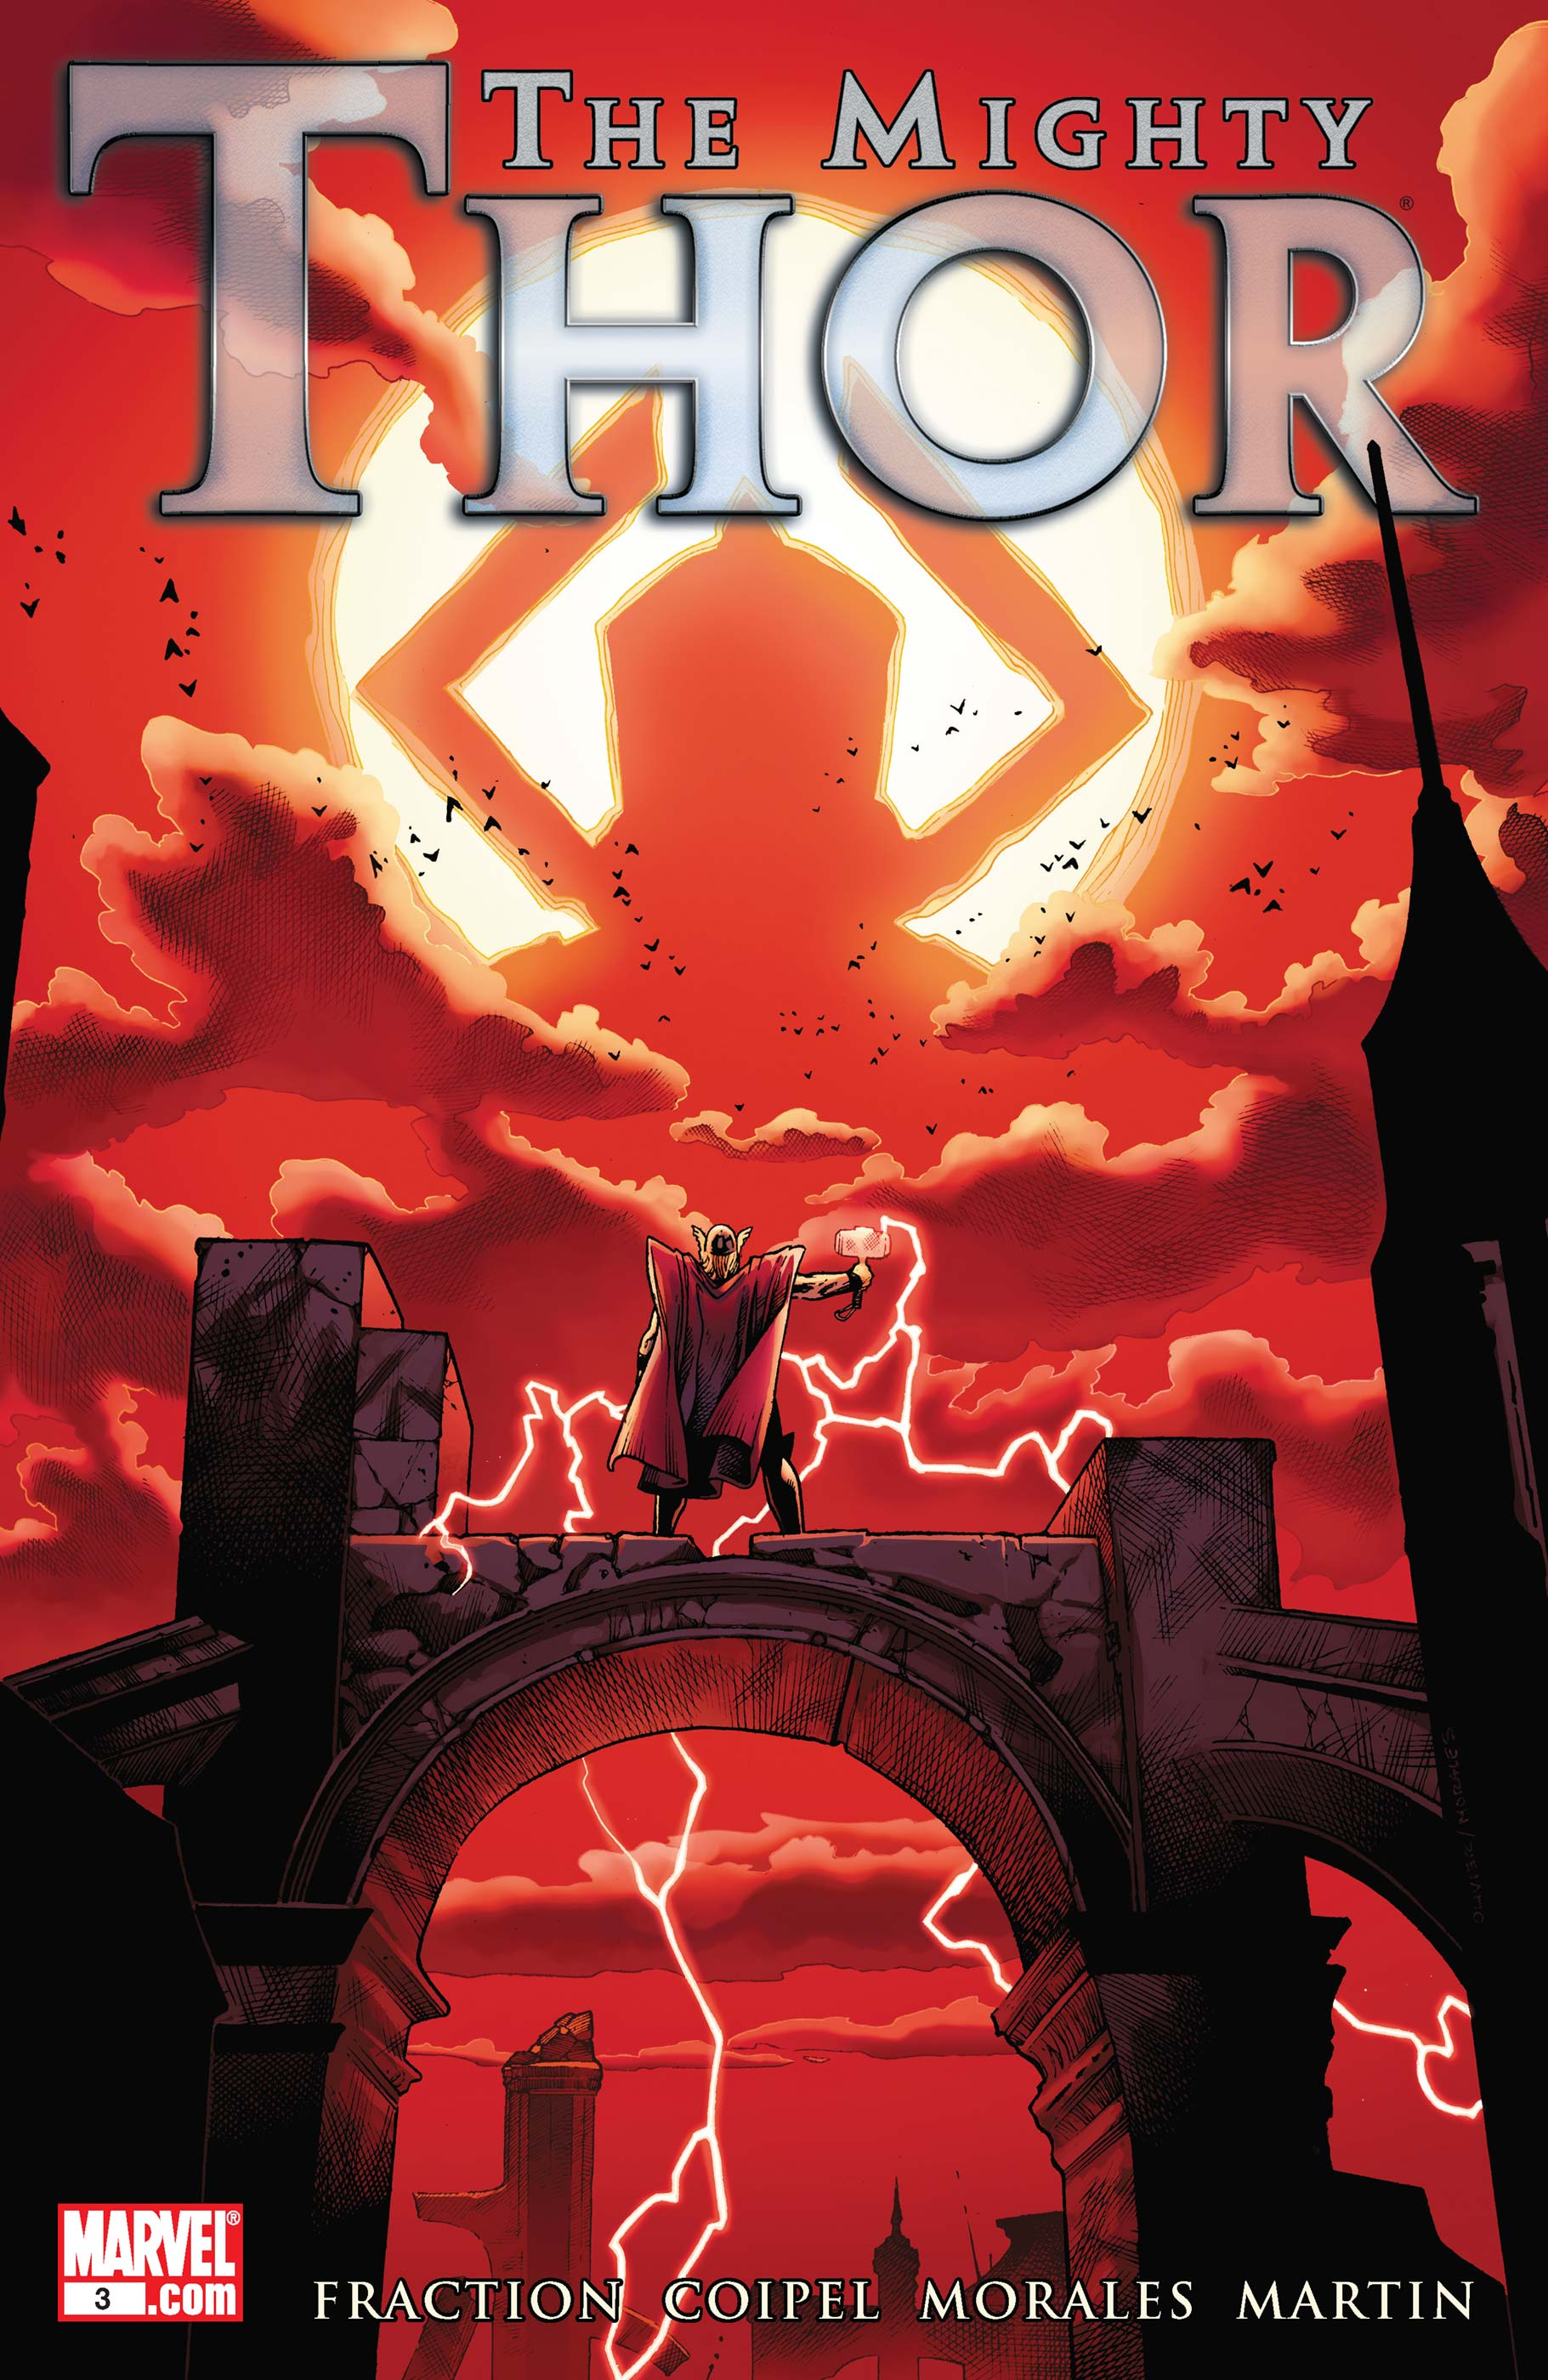 The Mighty Thor (2011) #3